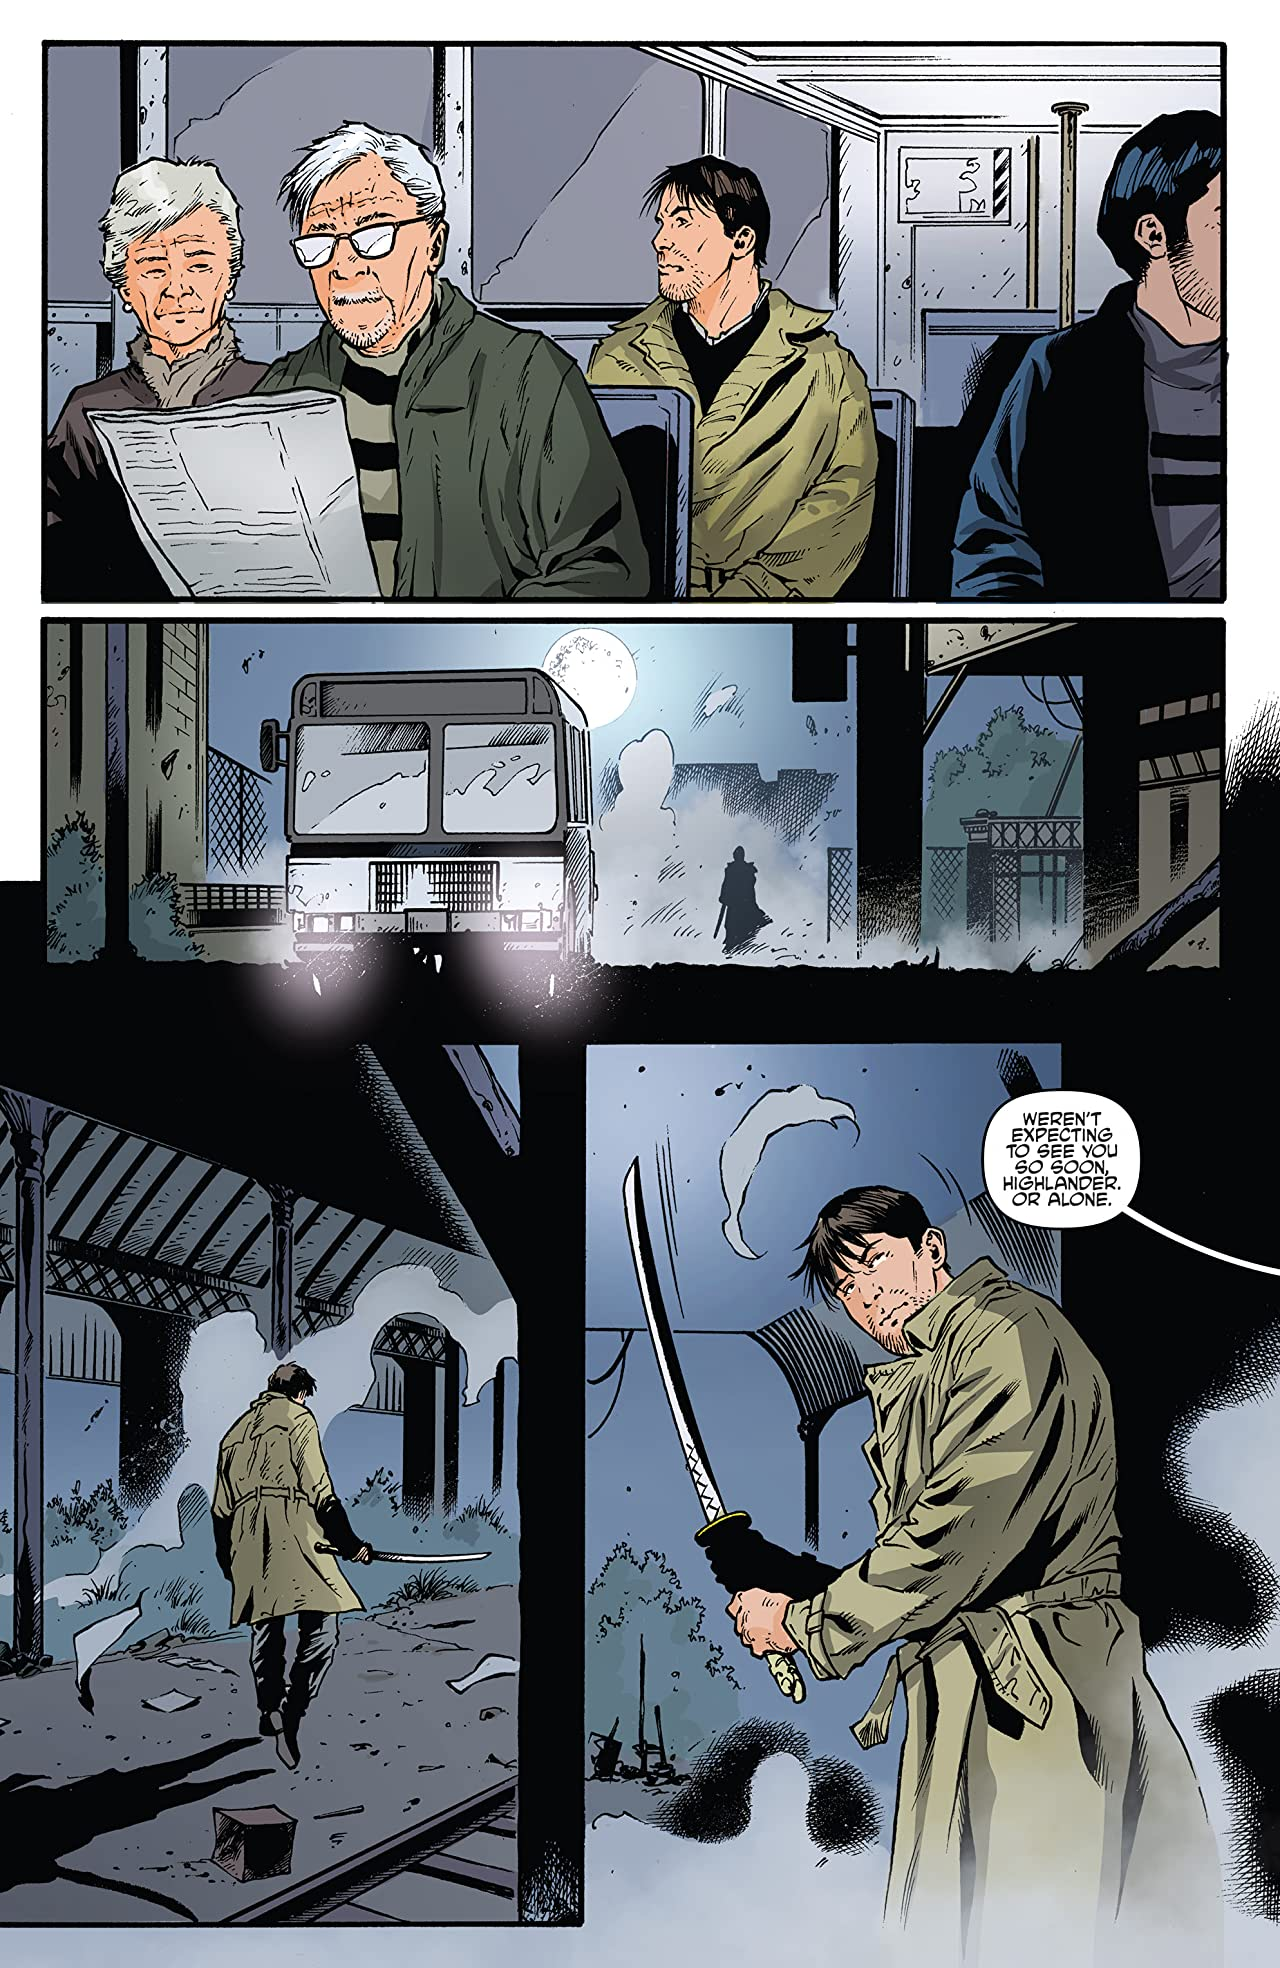 Highlander: The American Dream #5